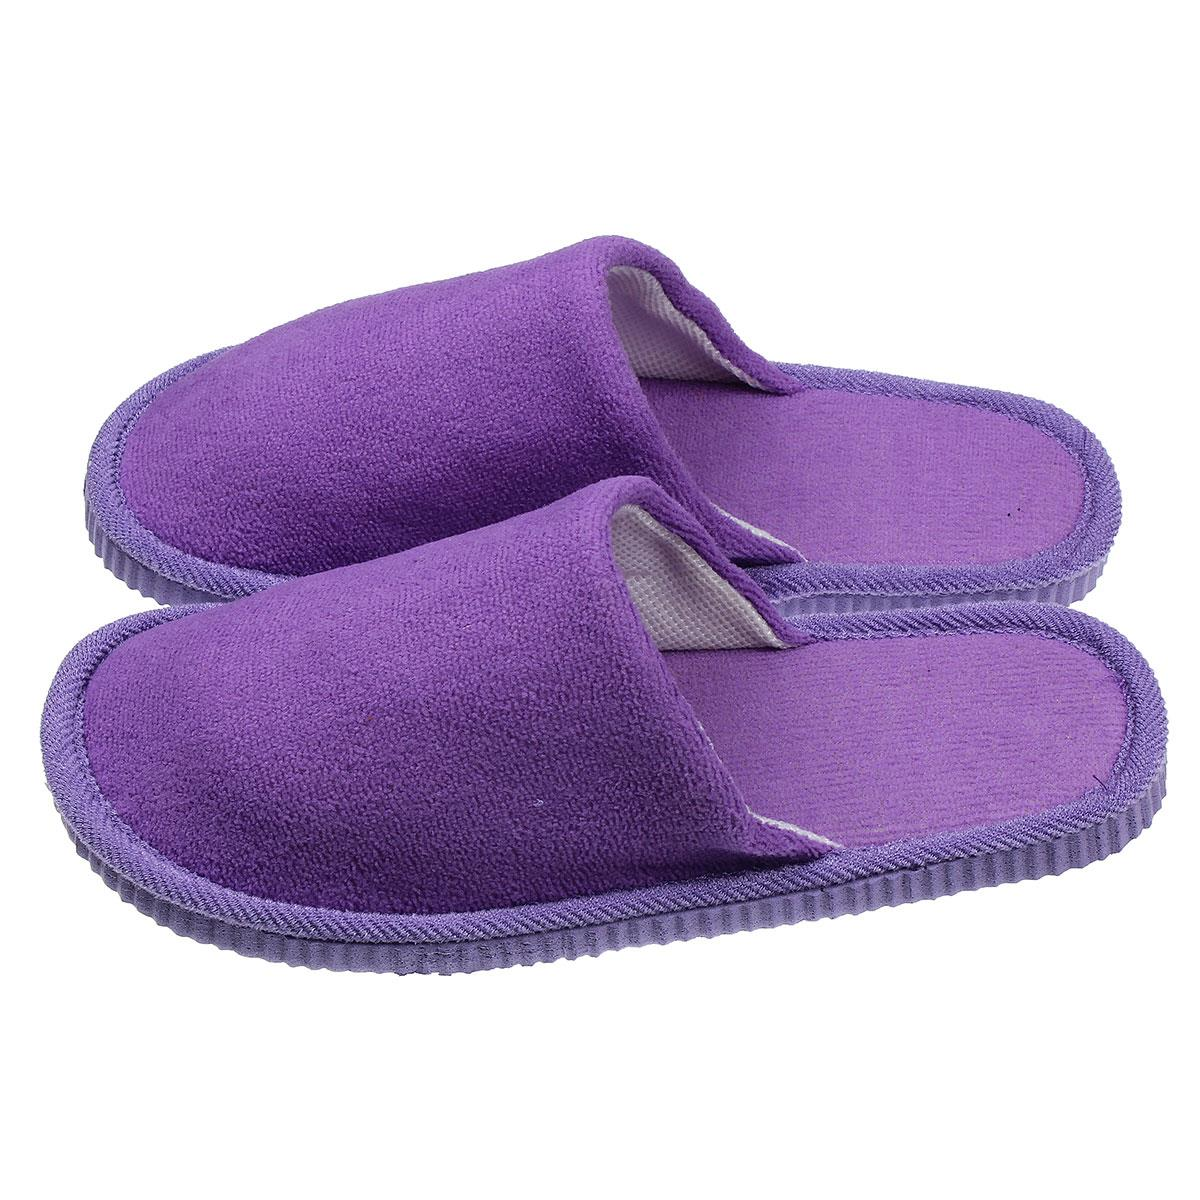 Womens Bedroom Slippers Reviews - Online Shopping Womens ...